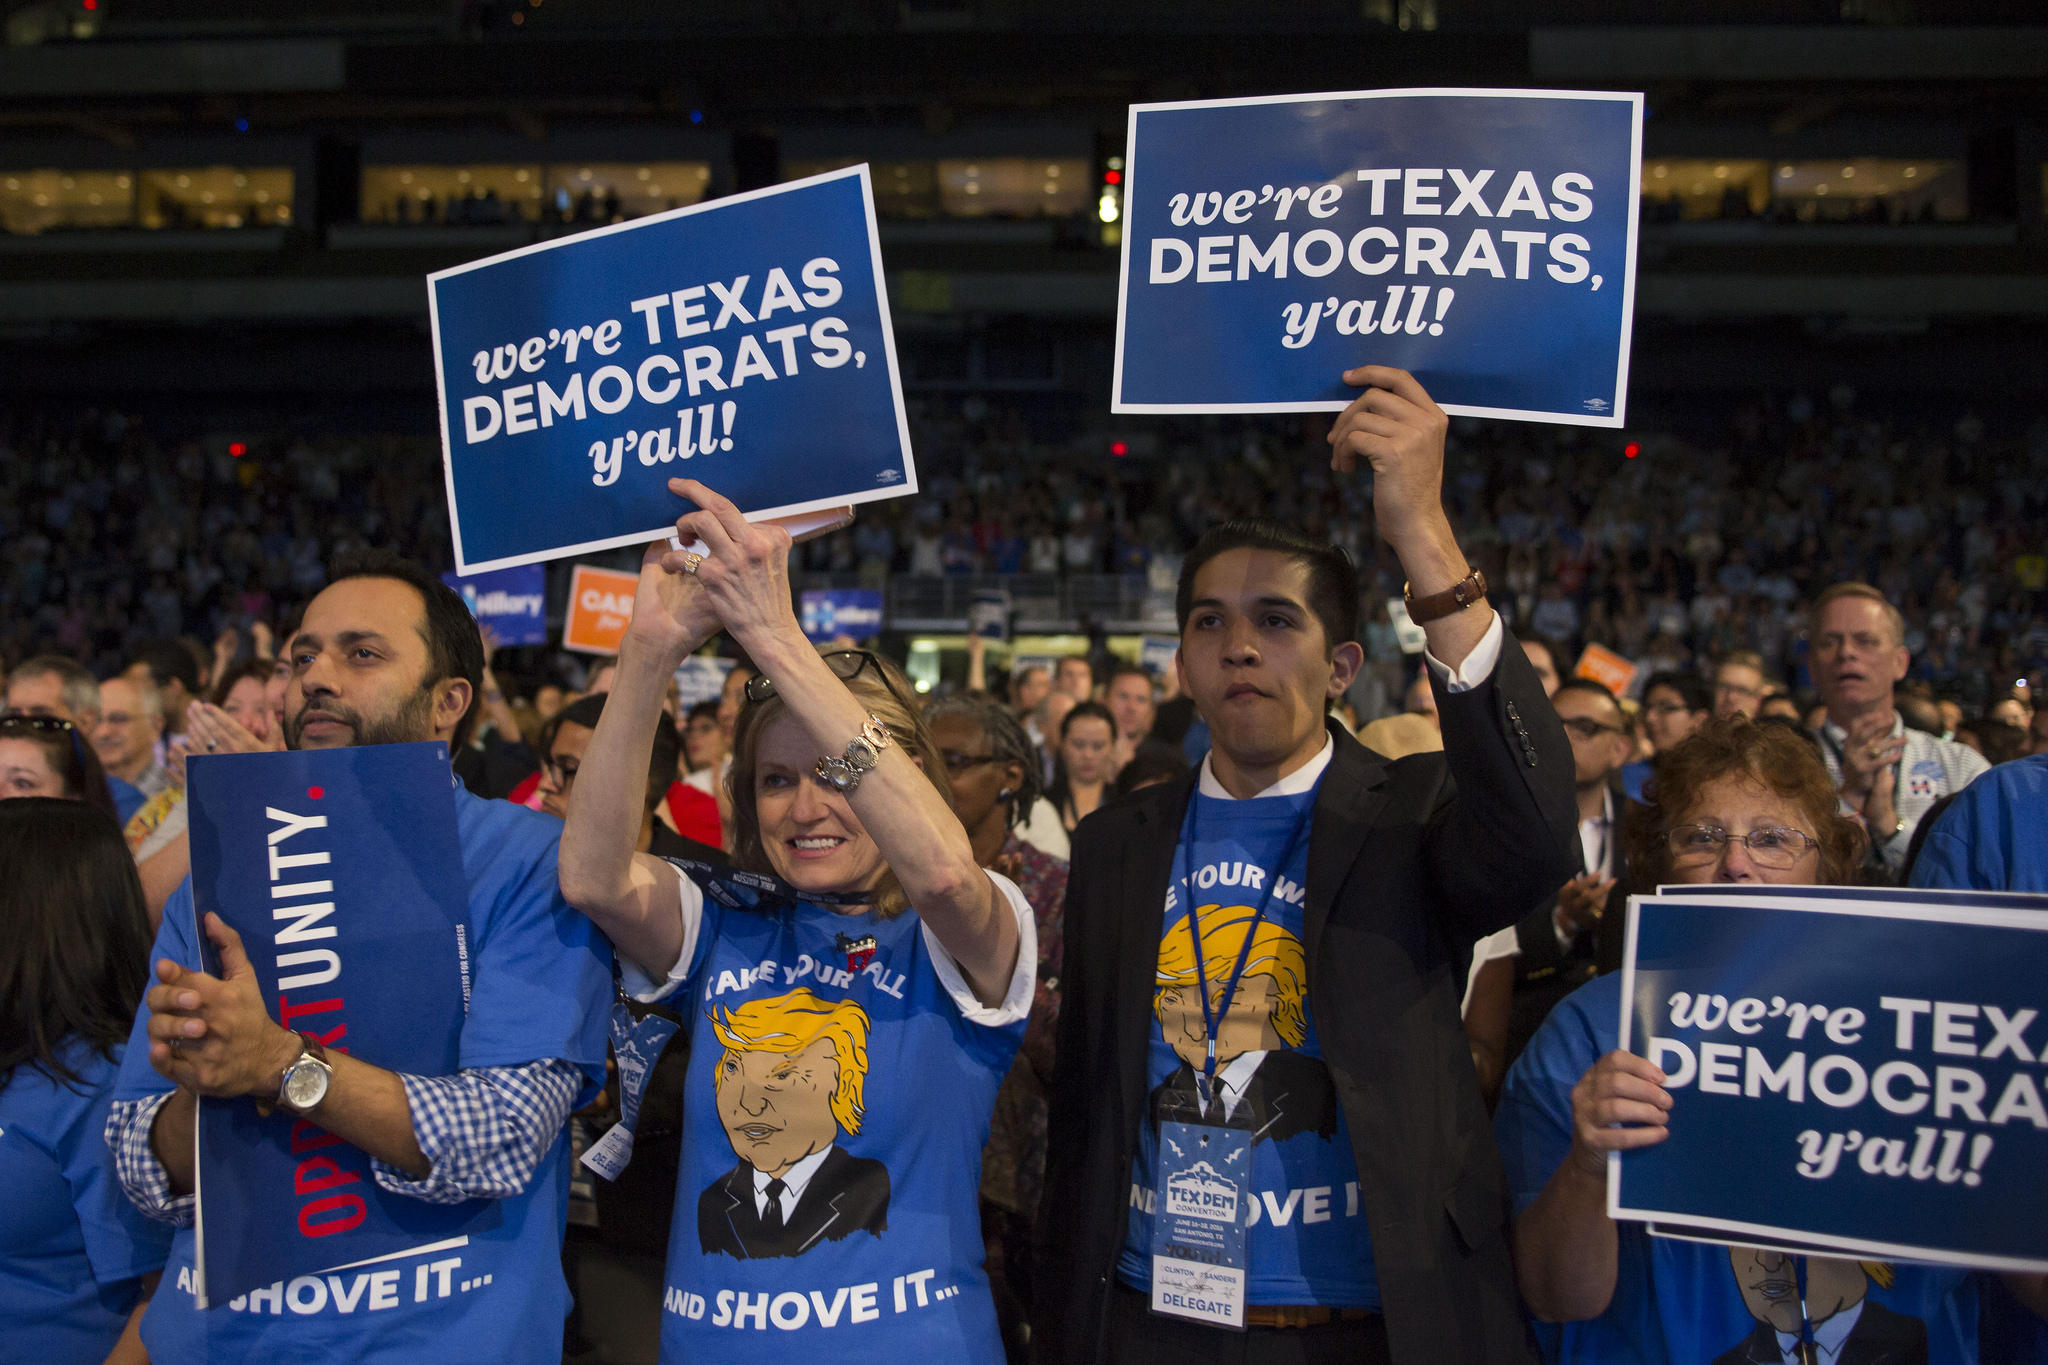 texas democrats recruiting slump could be over thanks to trump kut